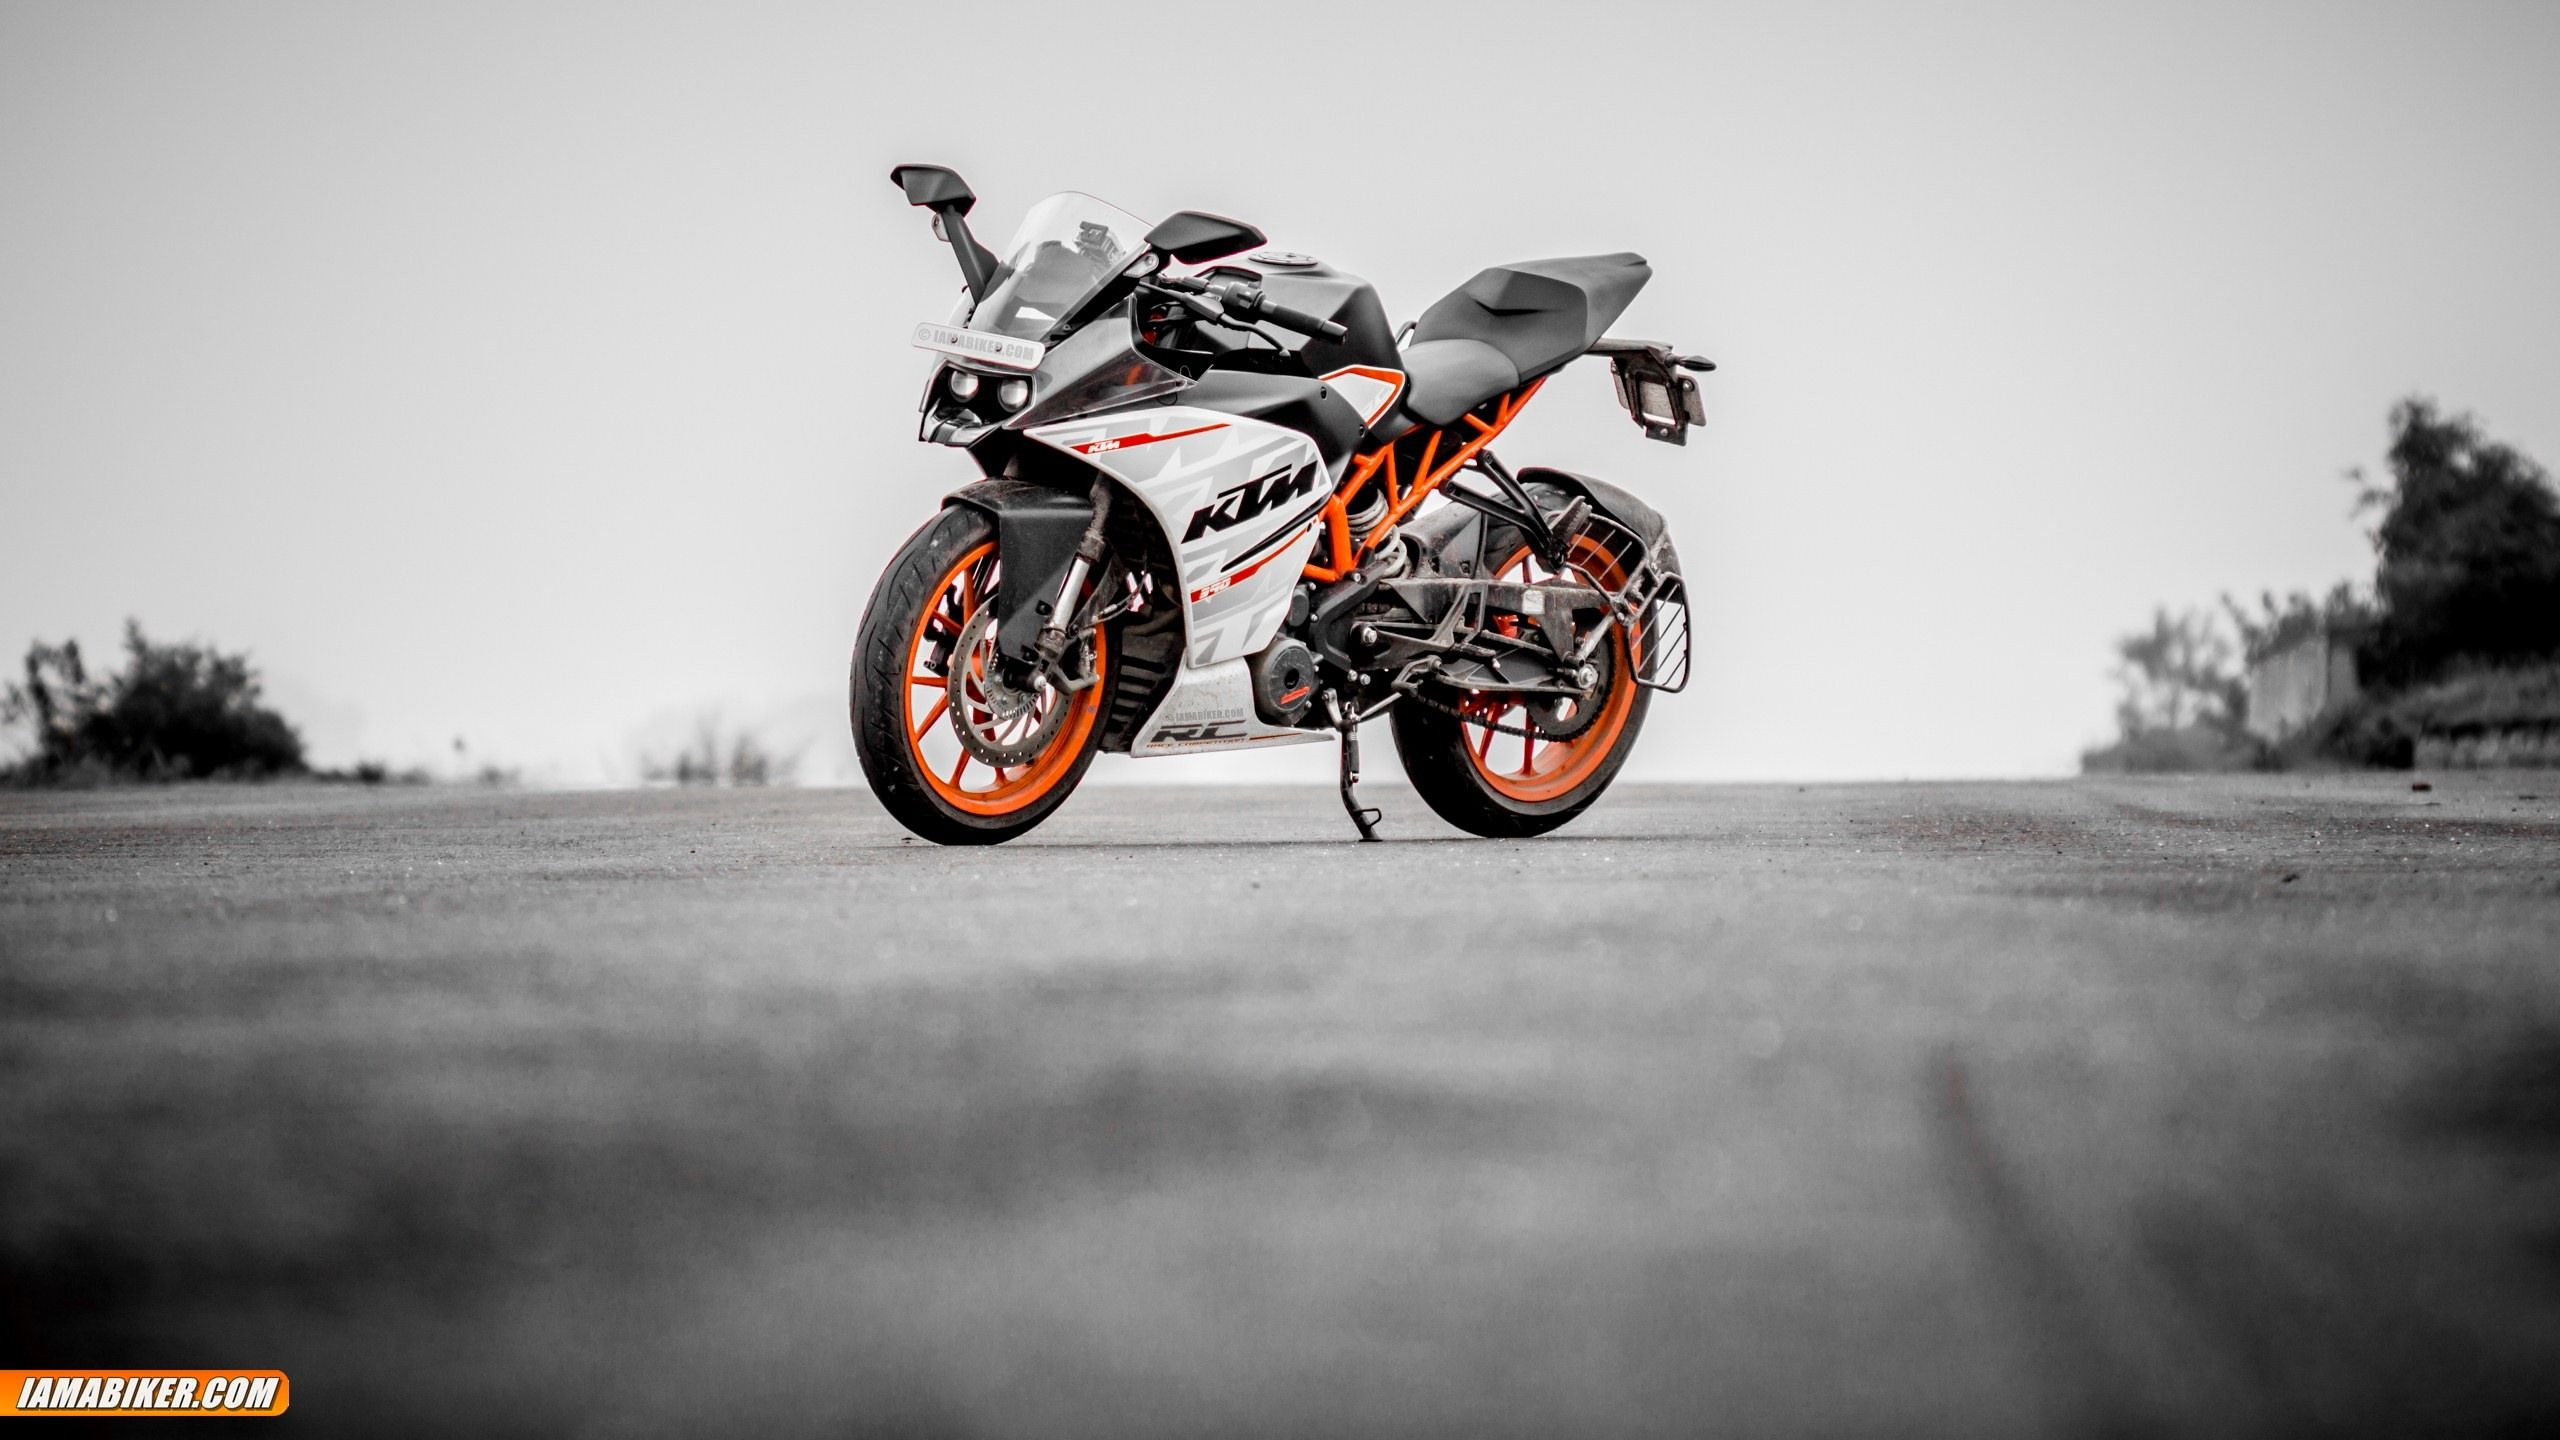 Ktm Rc 390 Wallpapers Motorcycle Wallpaper Ktm Rc Motorcycle